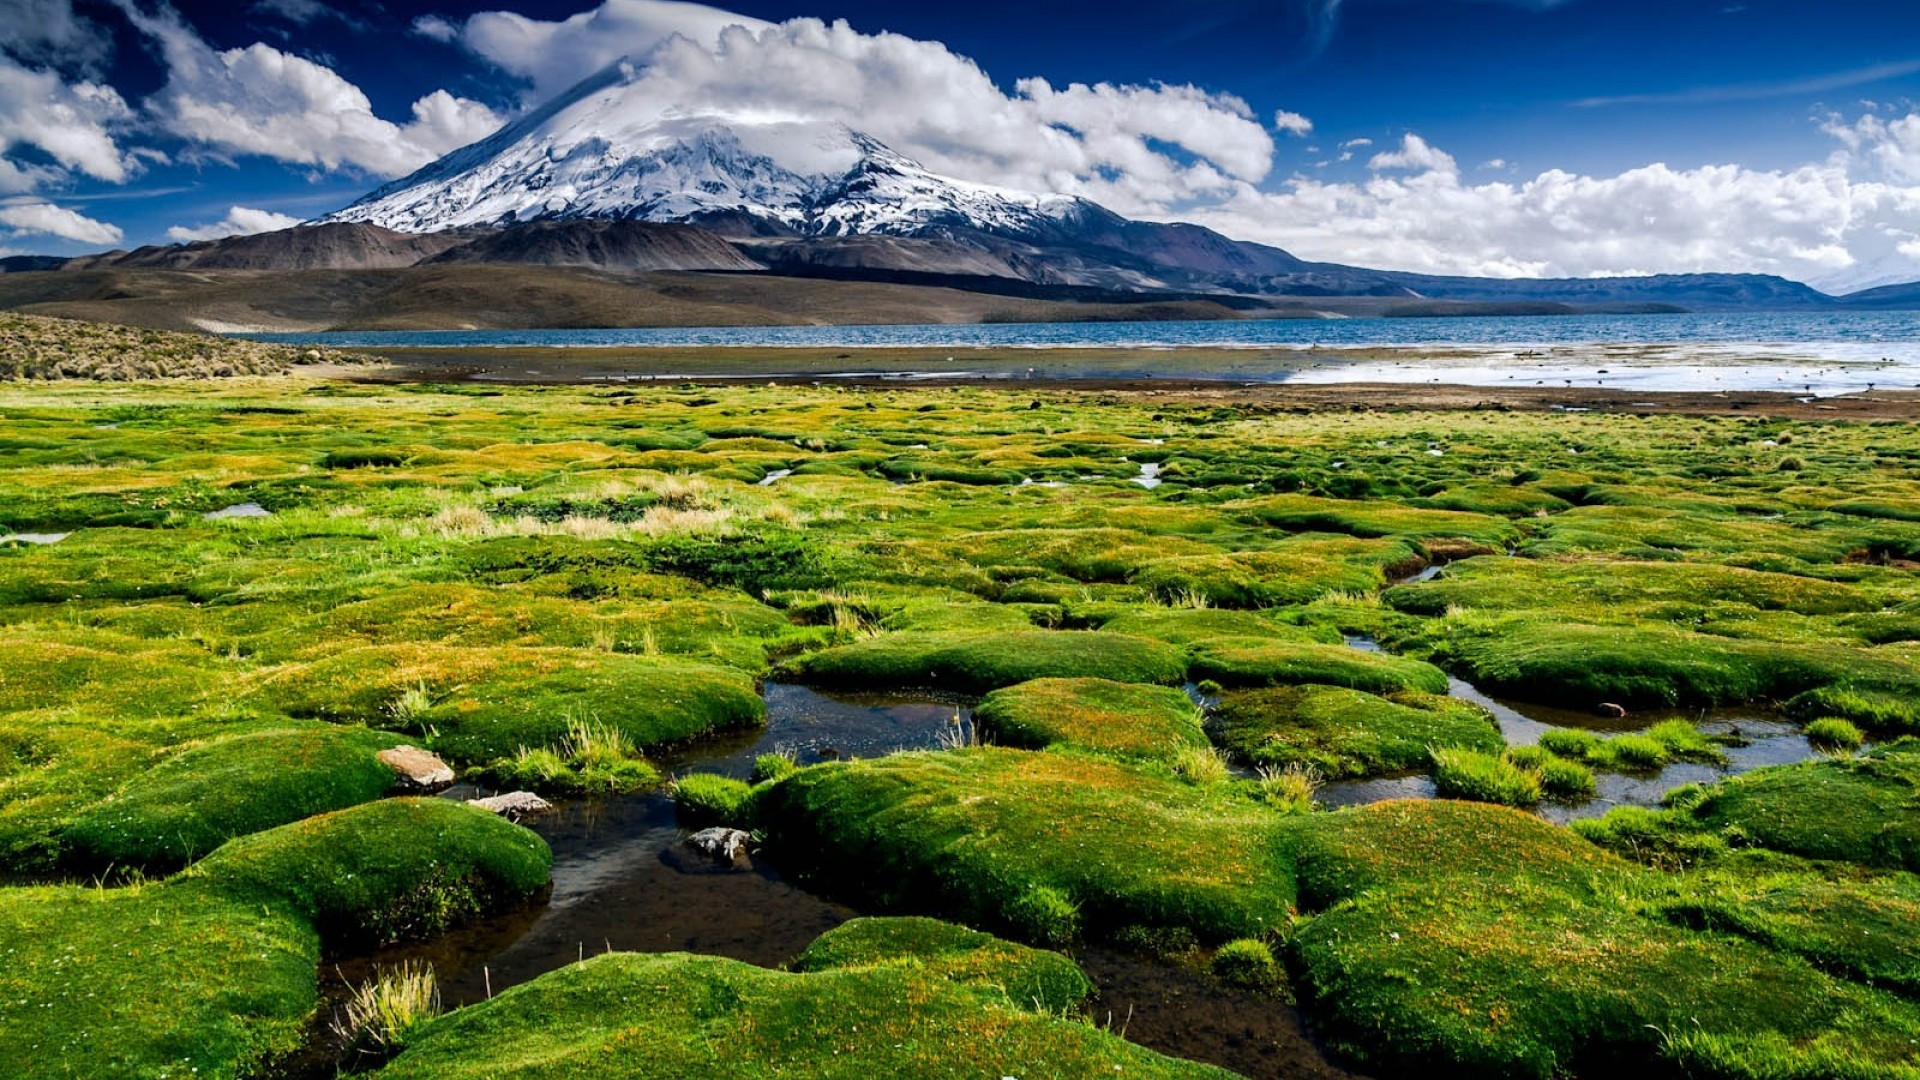 Chile Wallpapers | Best Wallpapers Hd Wallpaper 1920x1080